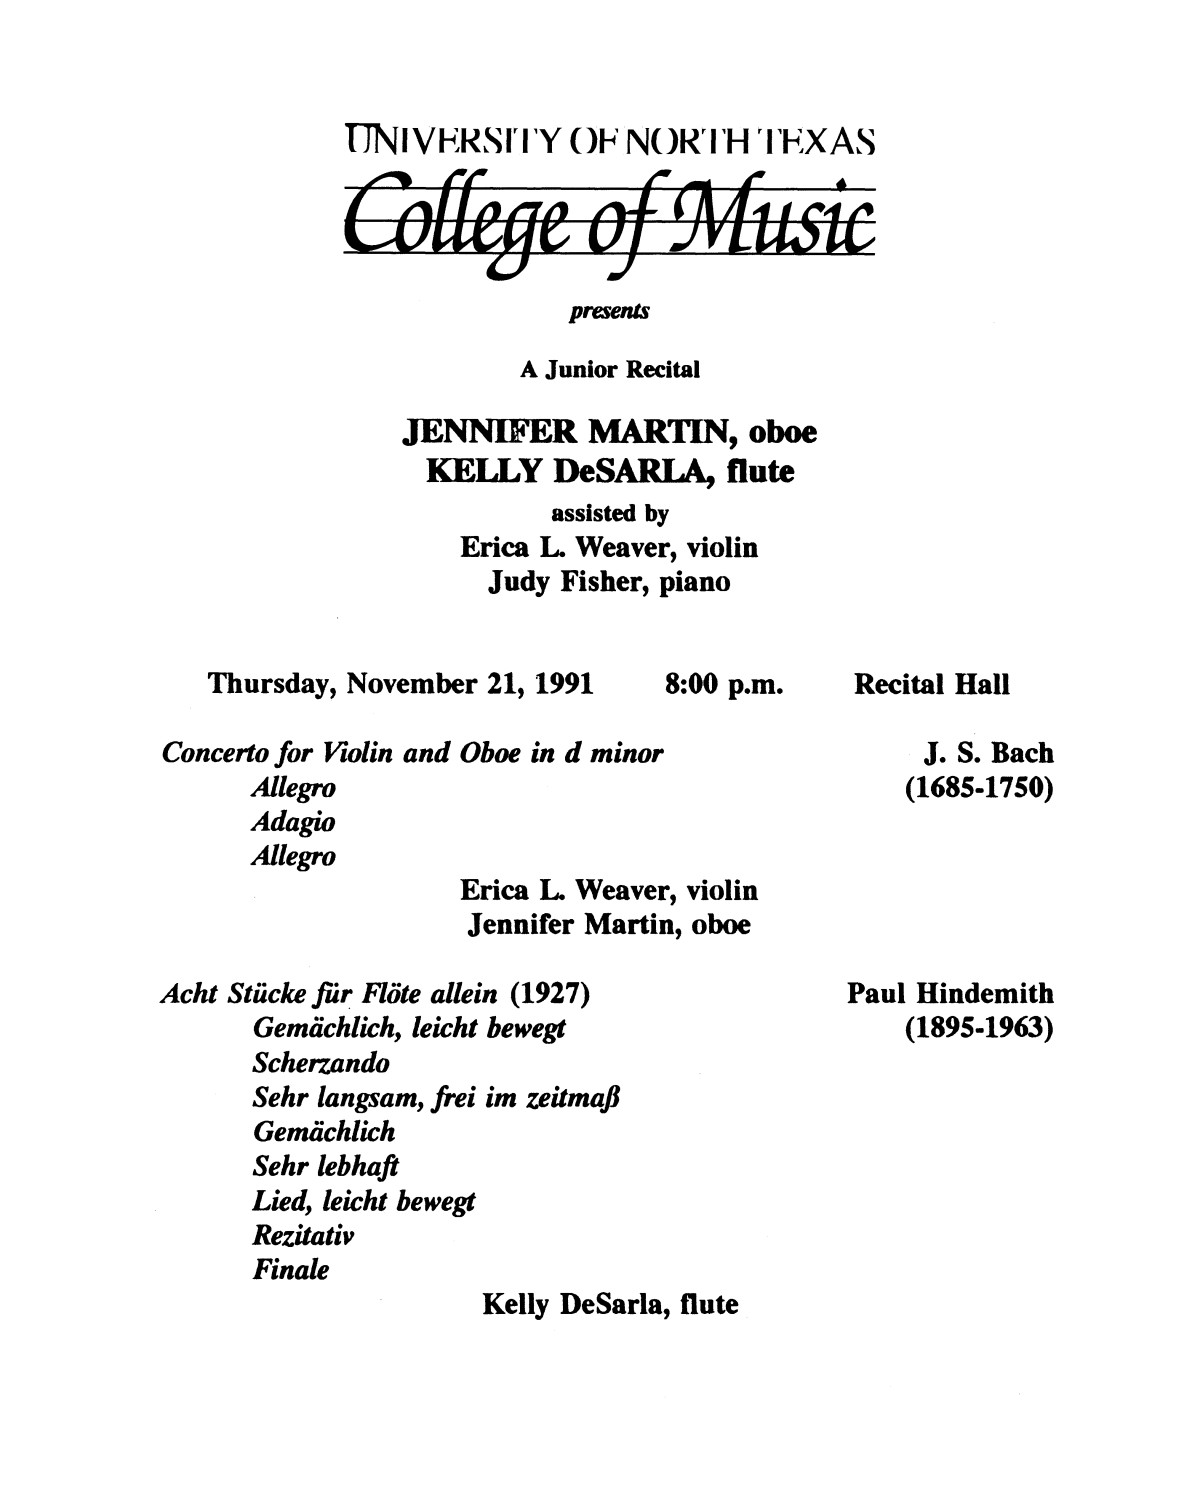 College of Music program book 1991-1992 Student Performances Vol. 2                                                                                                      [Sequence #]: 72 of 310